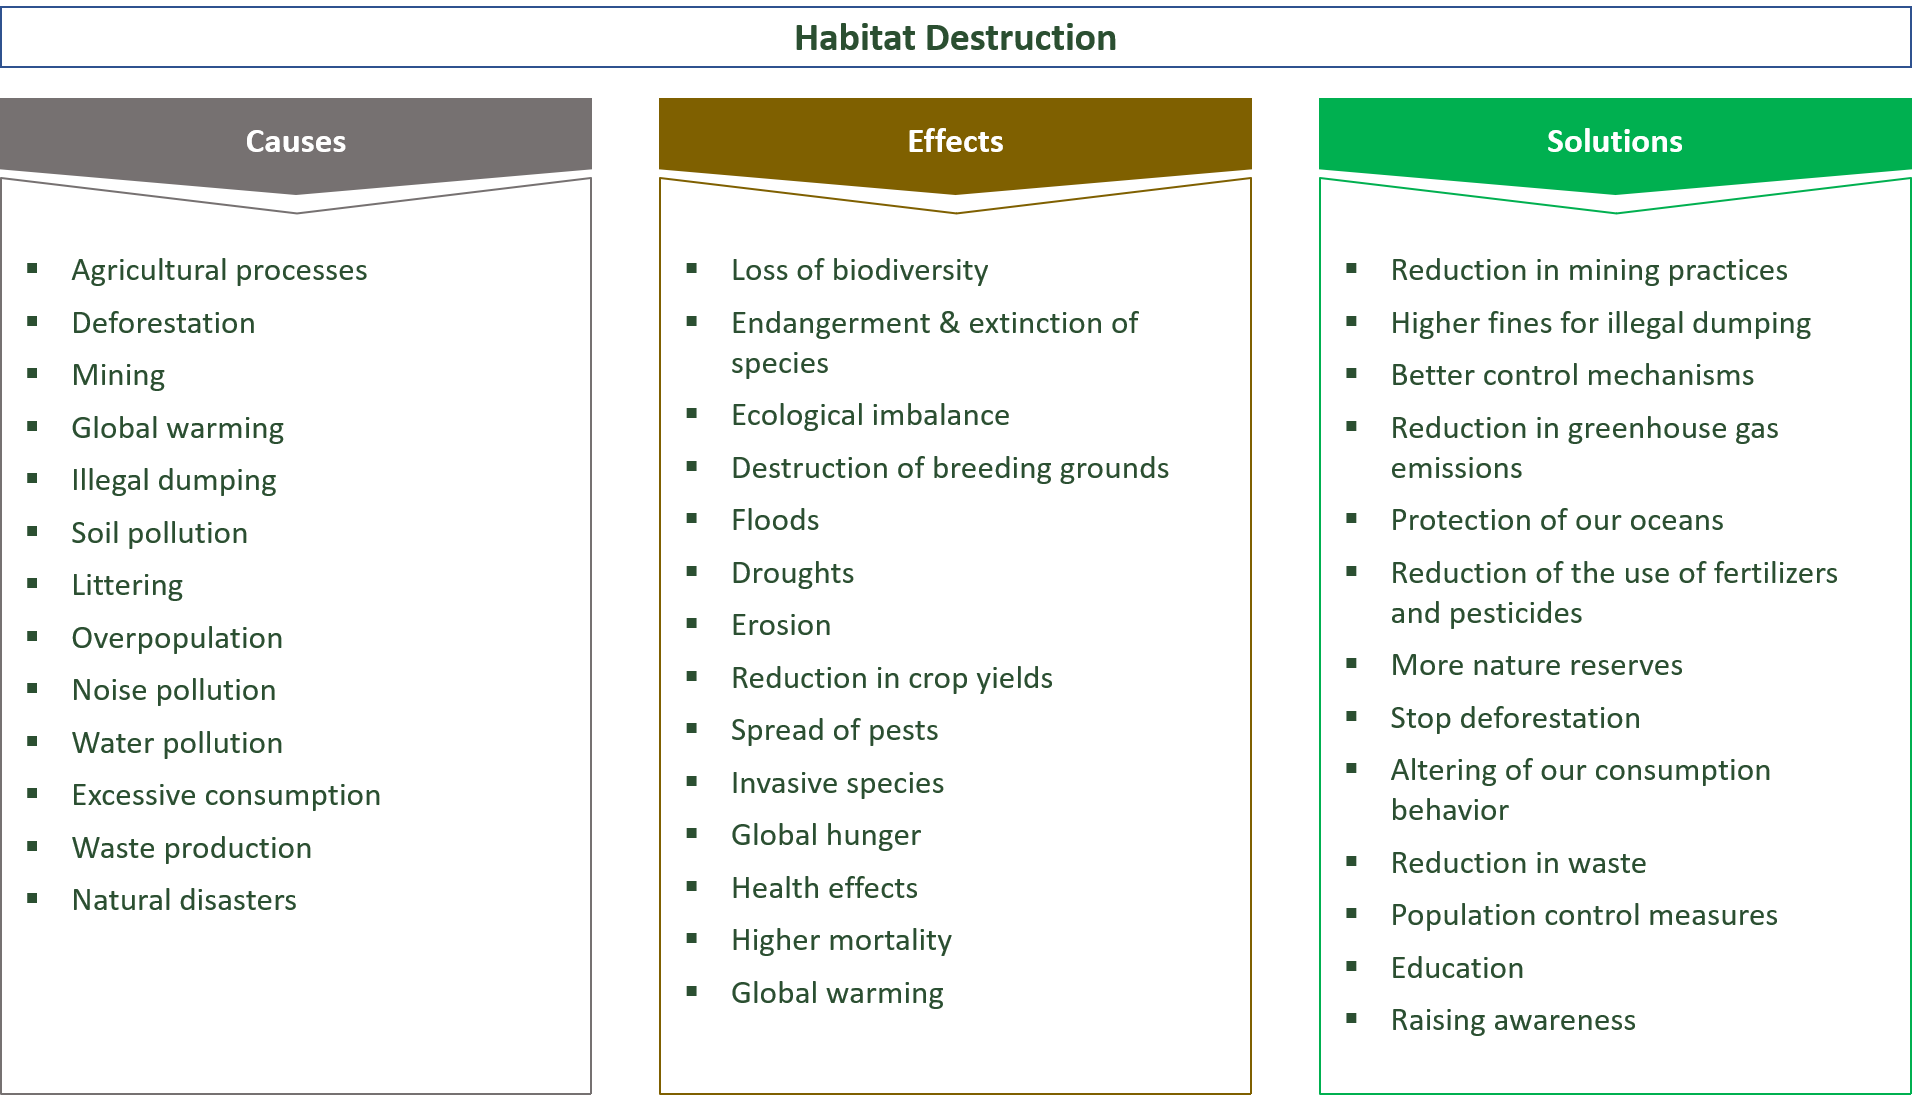 causes, effects and solutions regarding the destruction of habitats